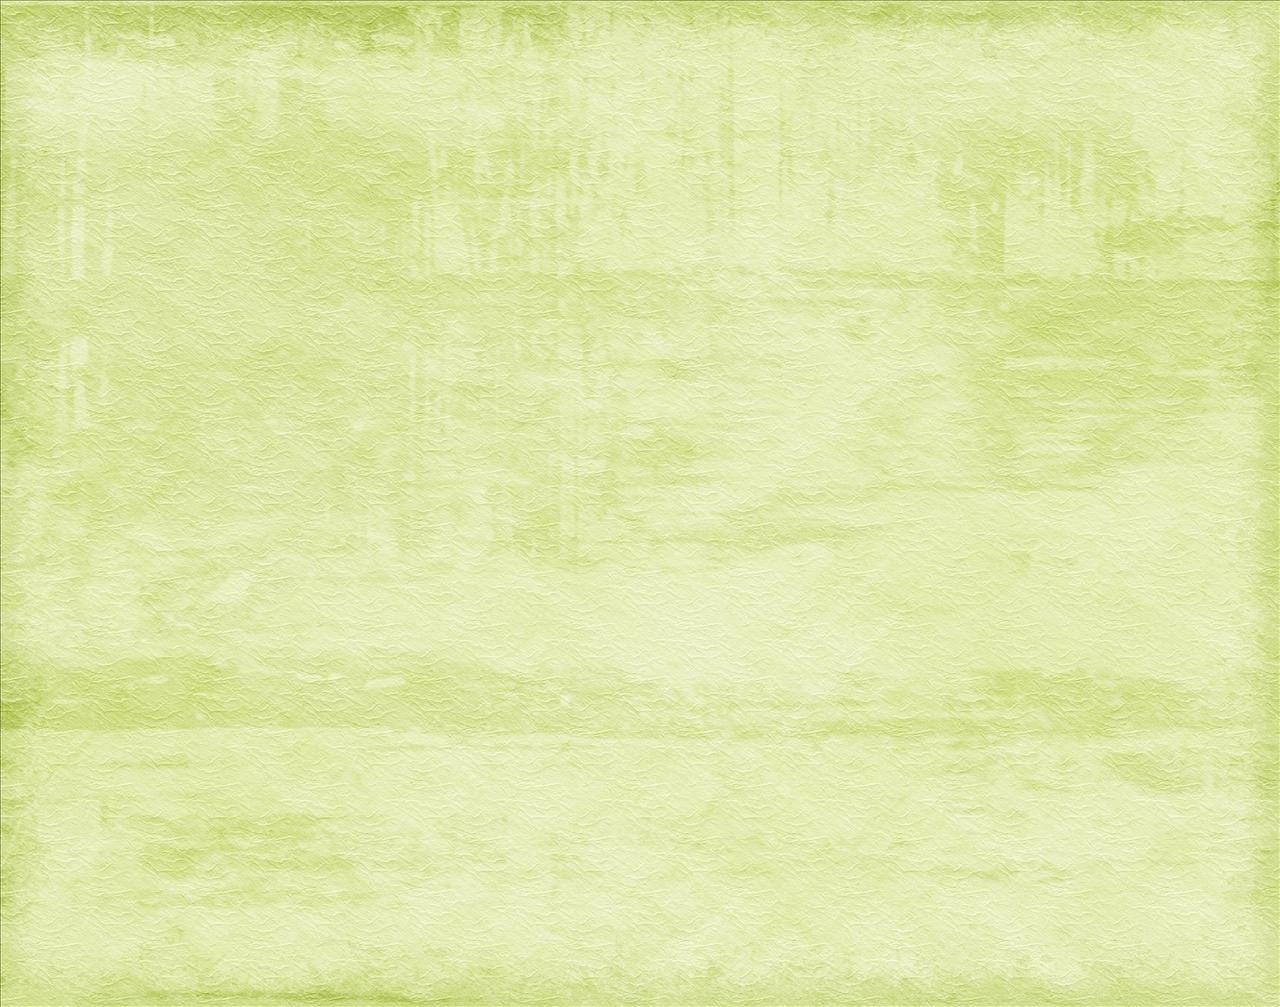 Bright Green Backgrounds